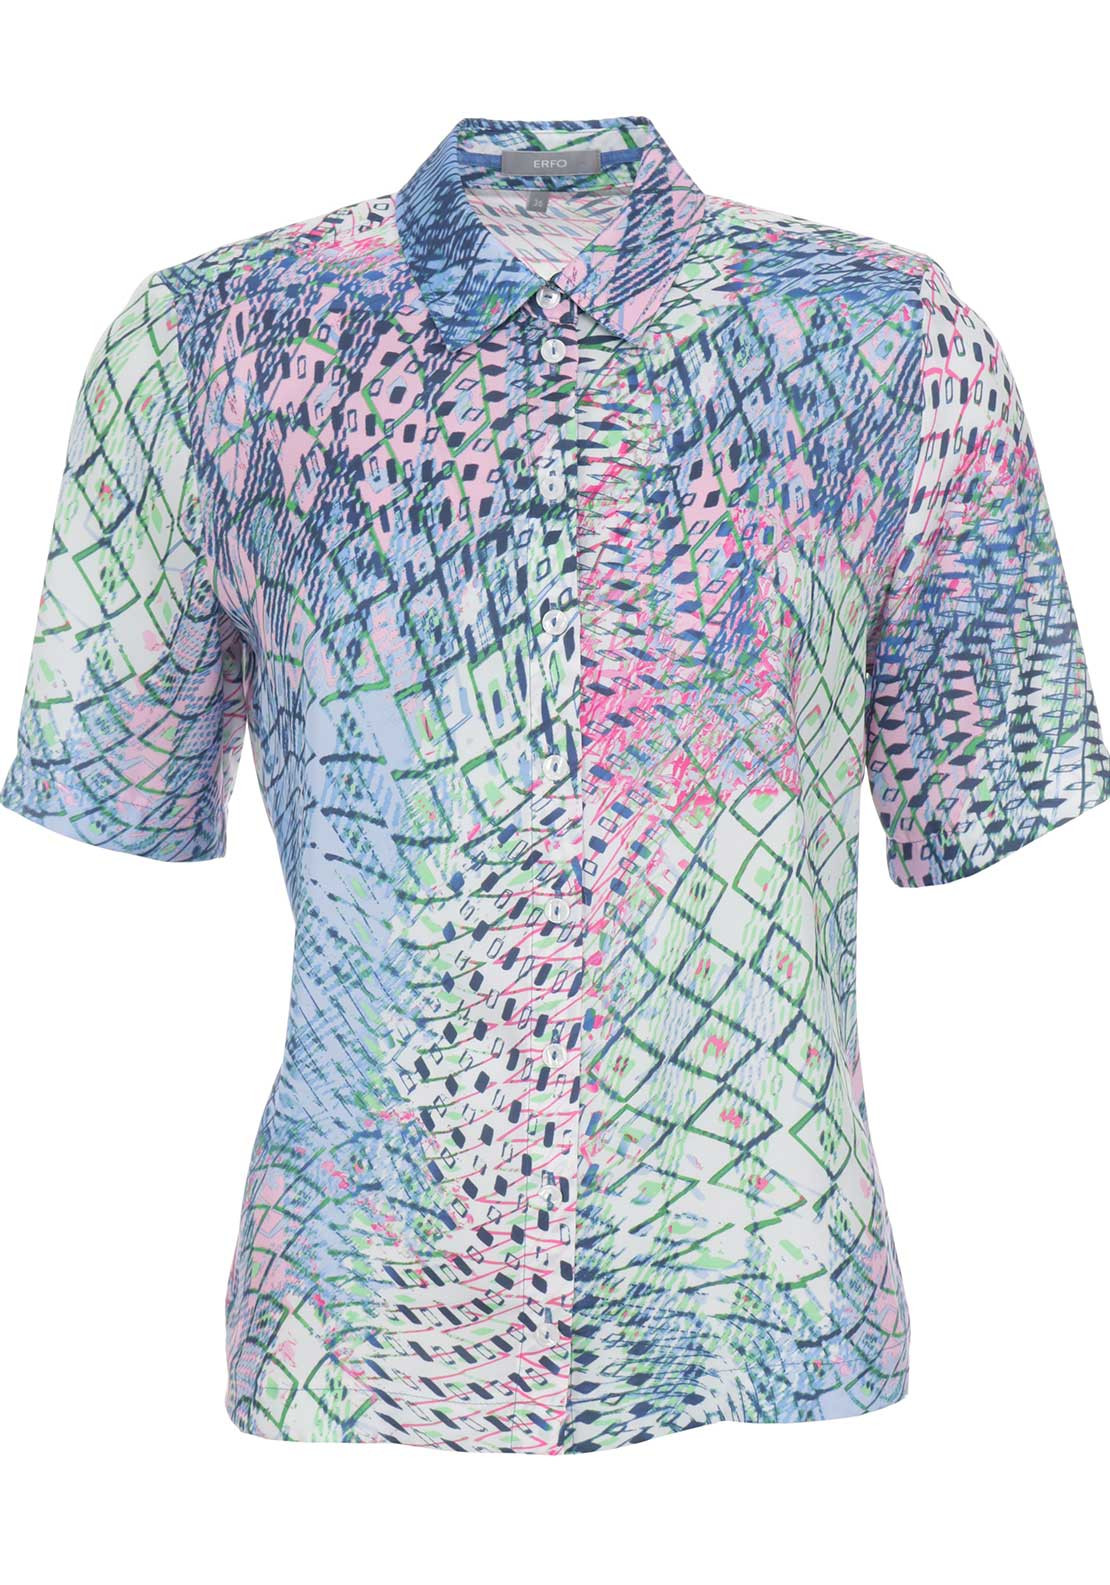 ERFO Abstract Print Blouse, Multi-Coloured